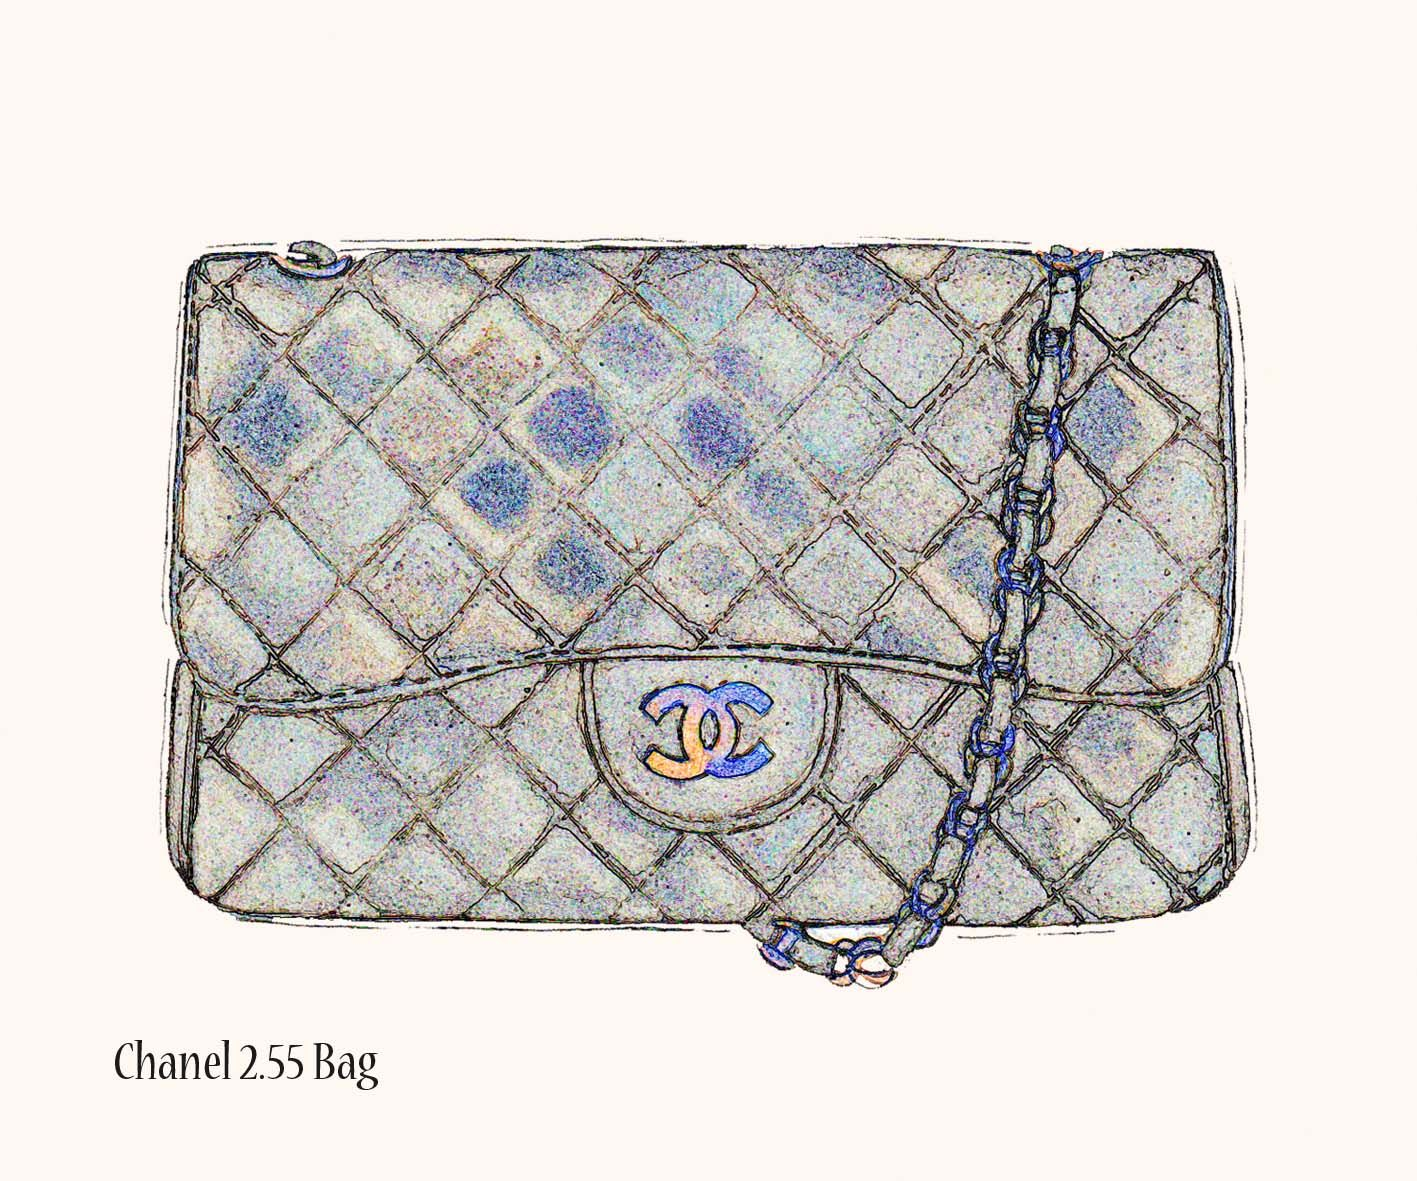 2f7e73afe chanel bag illustration - Google Search | clutch sketches in 2019 ...